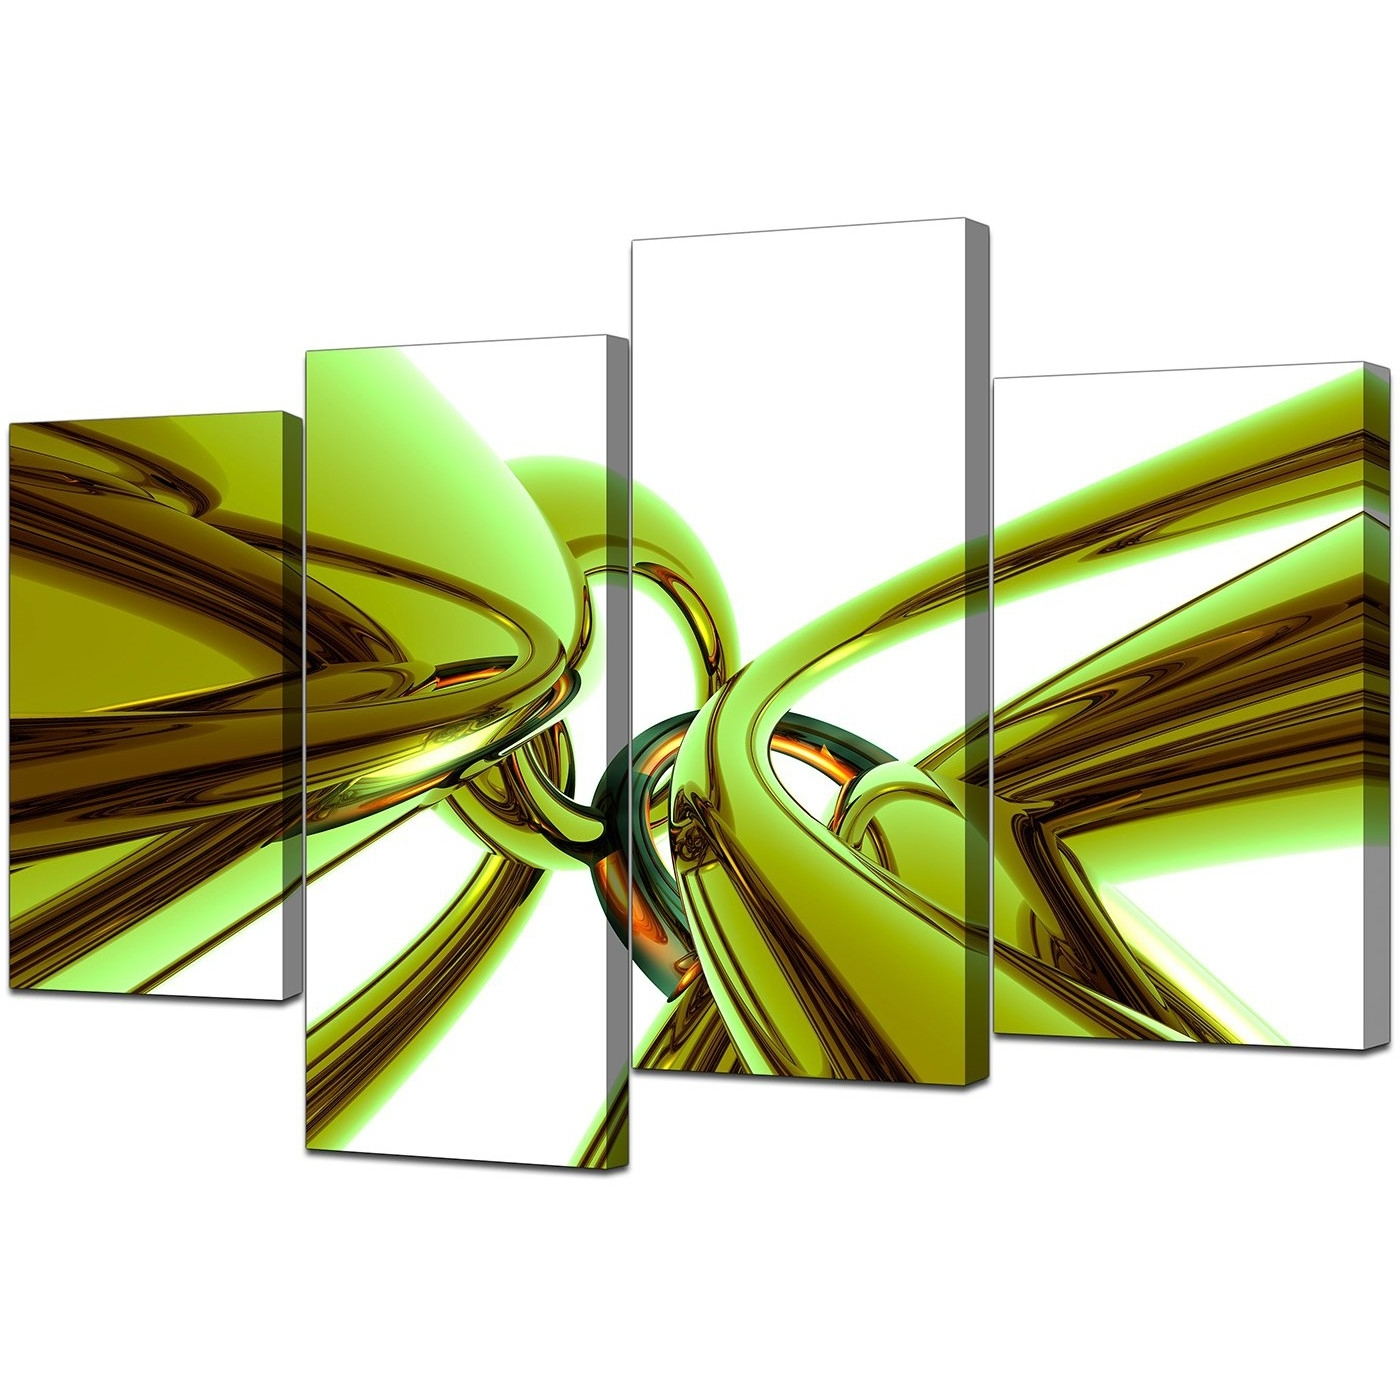 Abstract Canvas Wall Art In Green For Your Living Room – Set Of 4 Within Fashionable Green Wall Art (View 4 of 15)